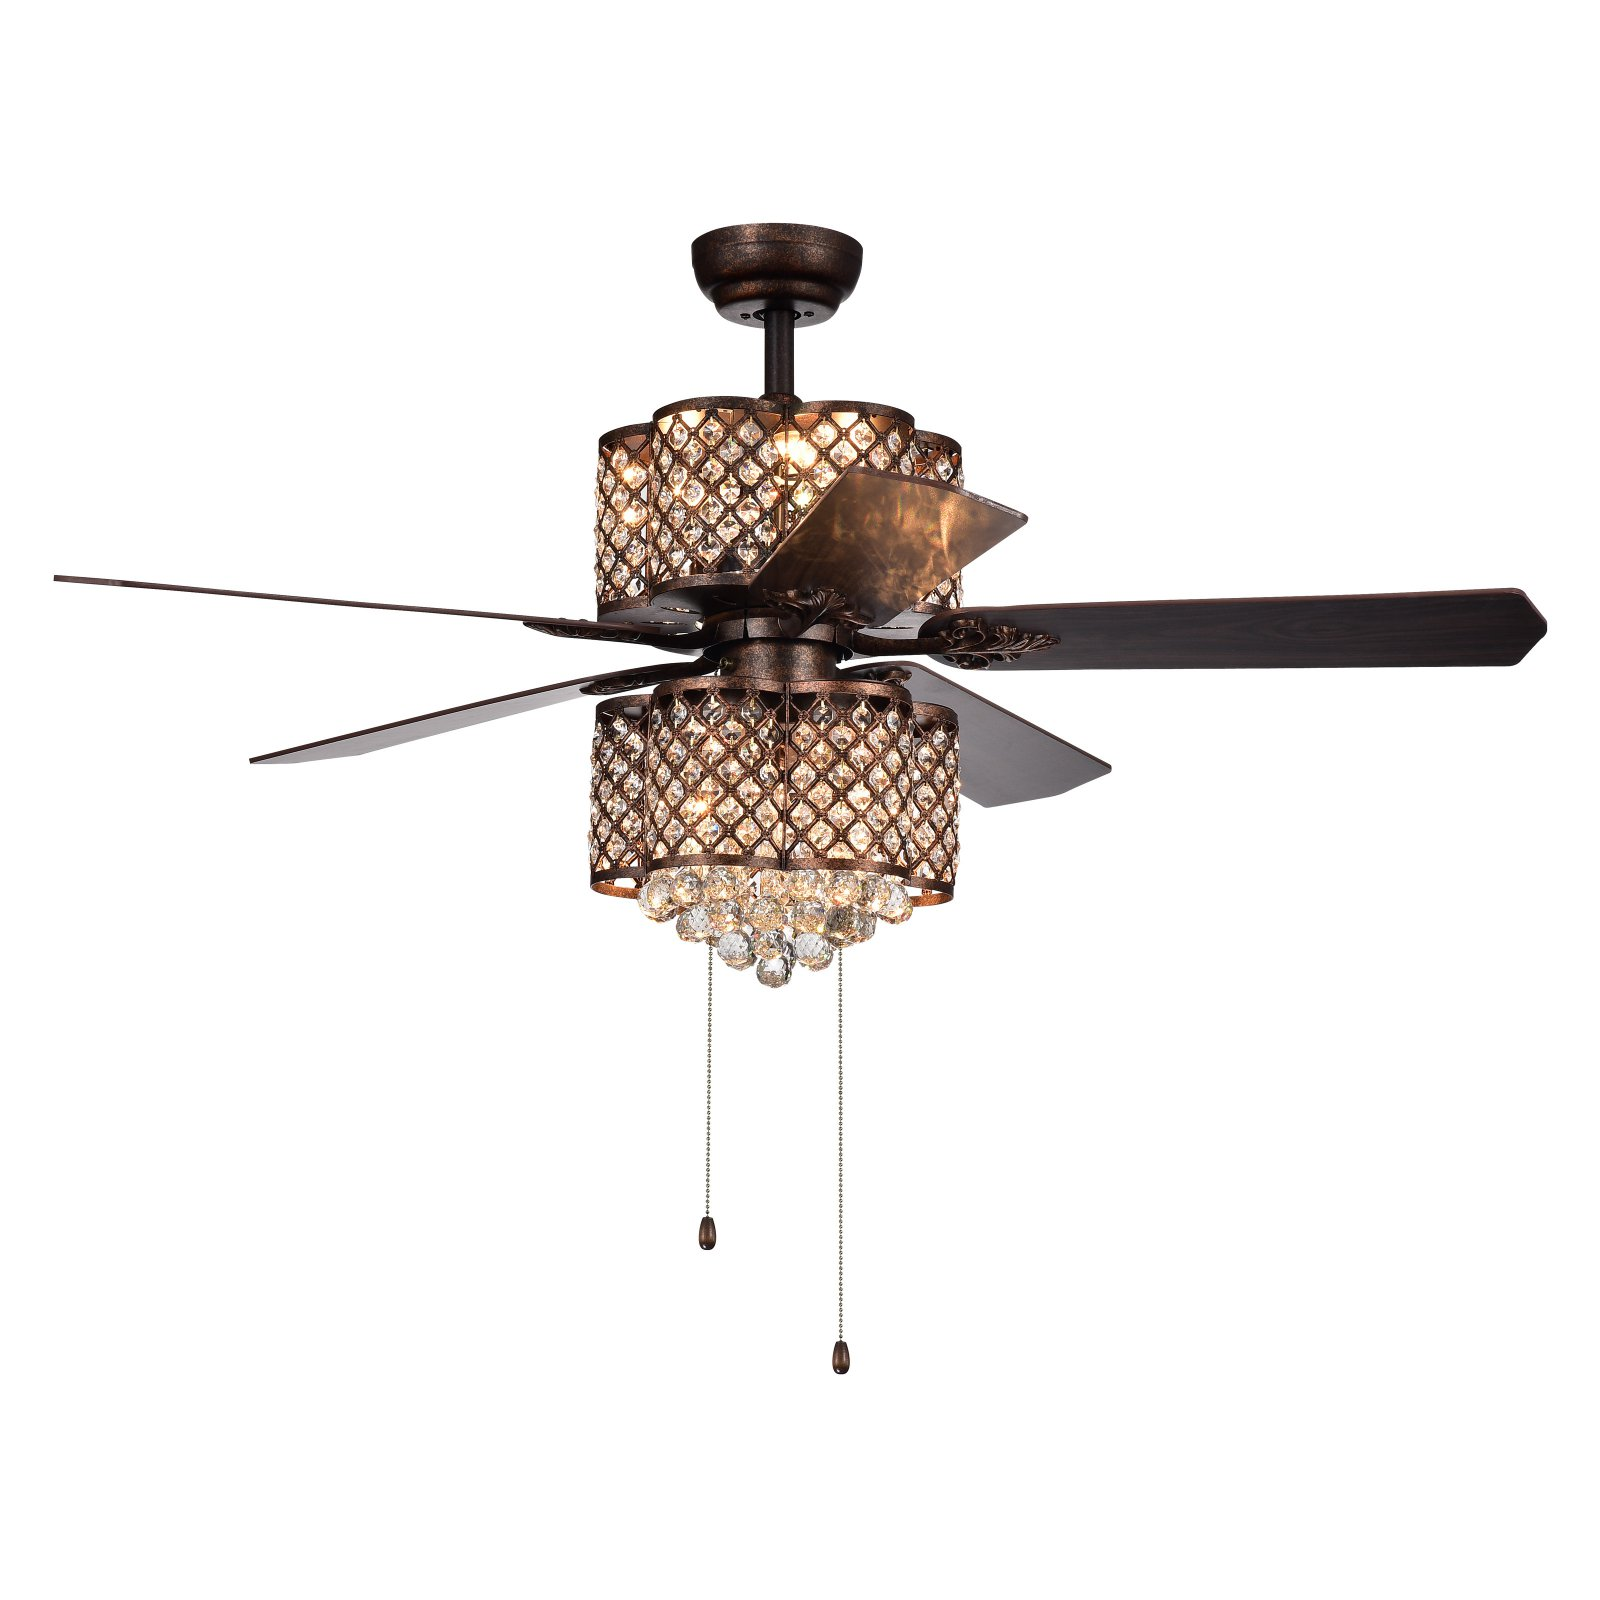 Rustic Ceiling Fan Light Fixtures Quincy 6 Light Crystal 5 Blade 52 Inch Rustic Bronze Ceiling Fan